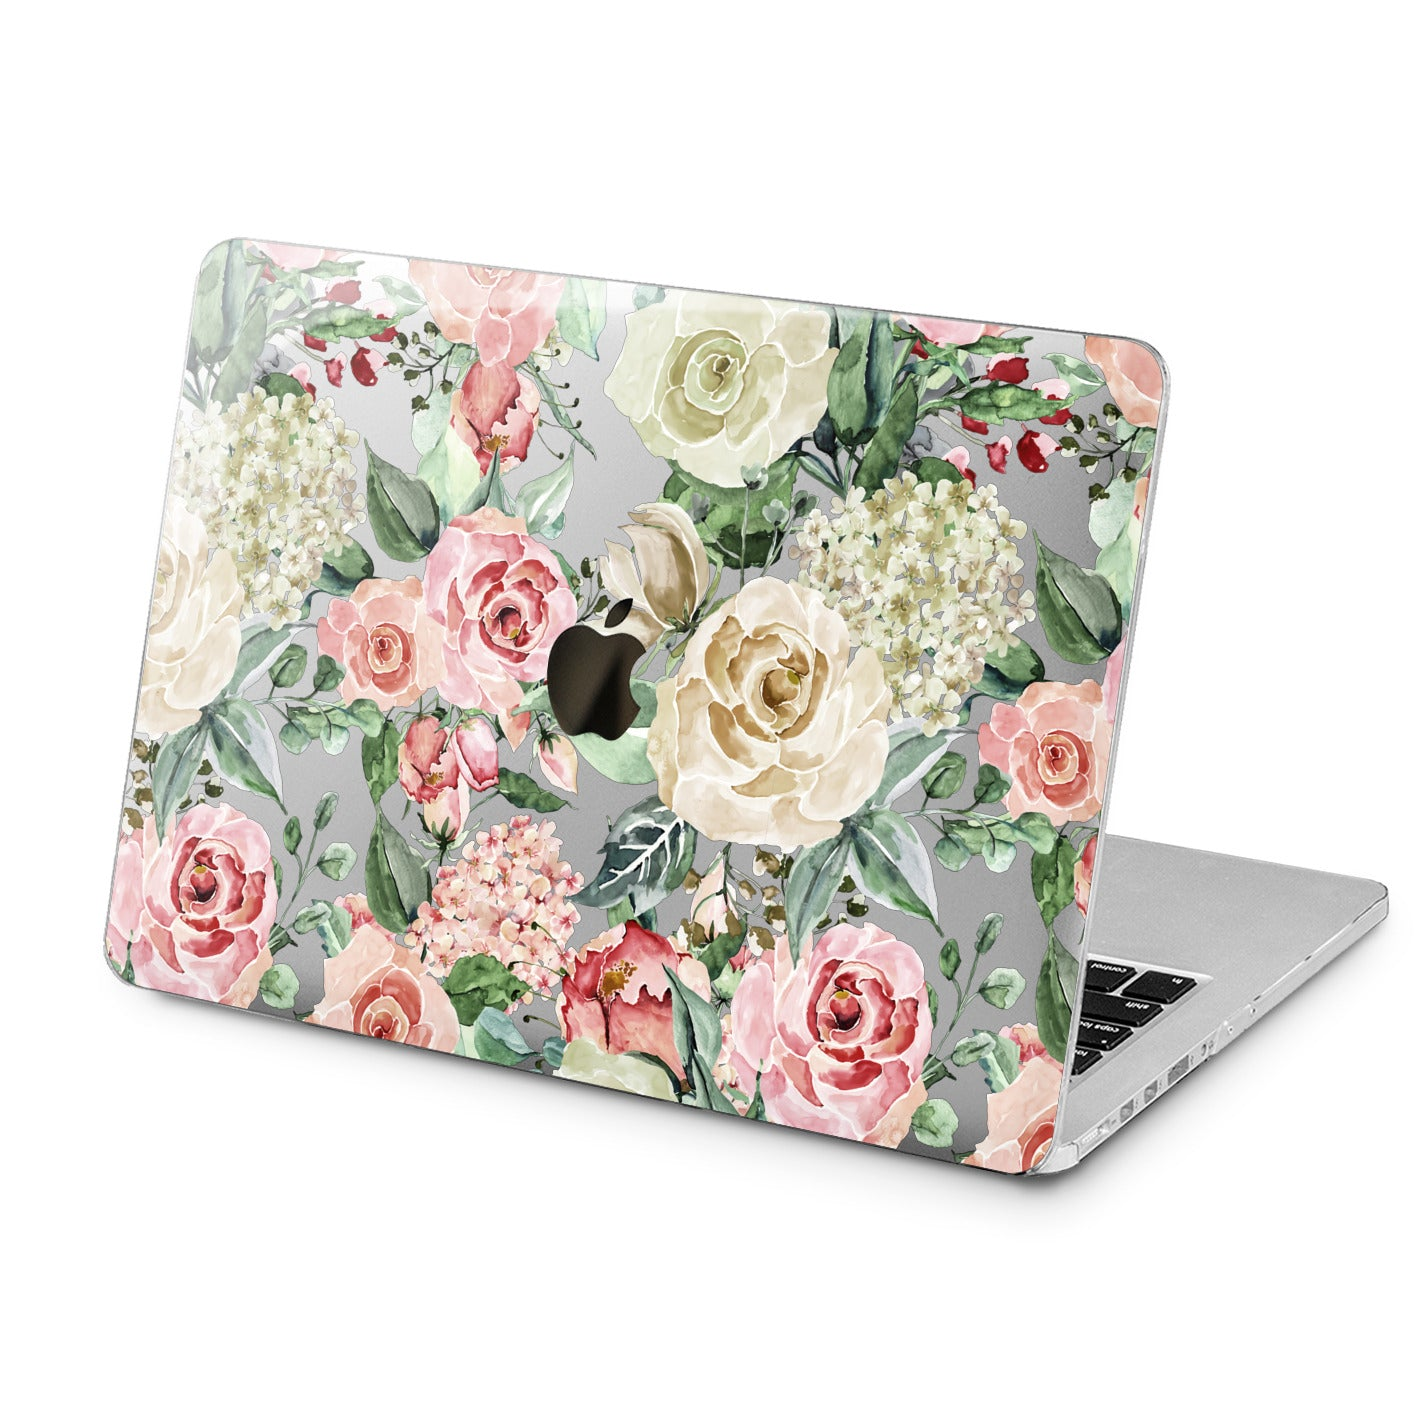 Lex Altern White Roses Art Case for your Laptop Apple Macbook.